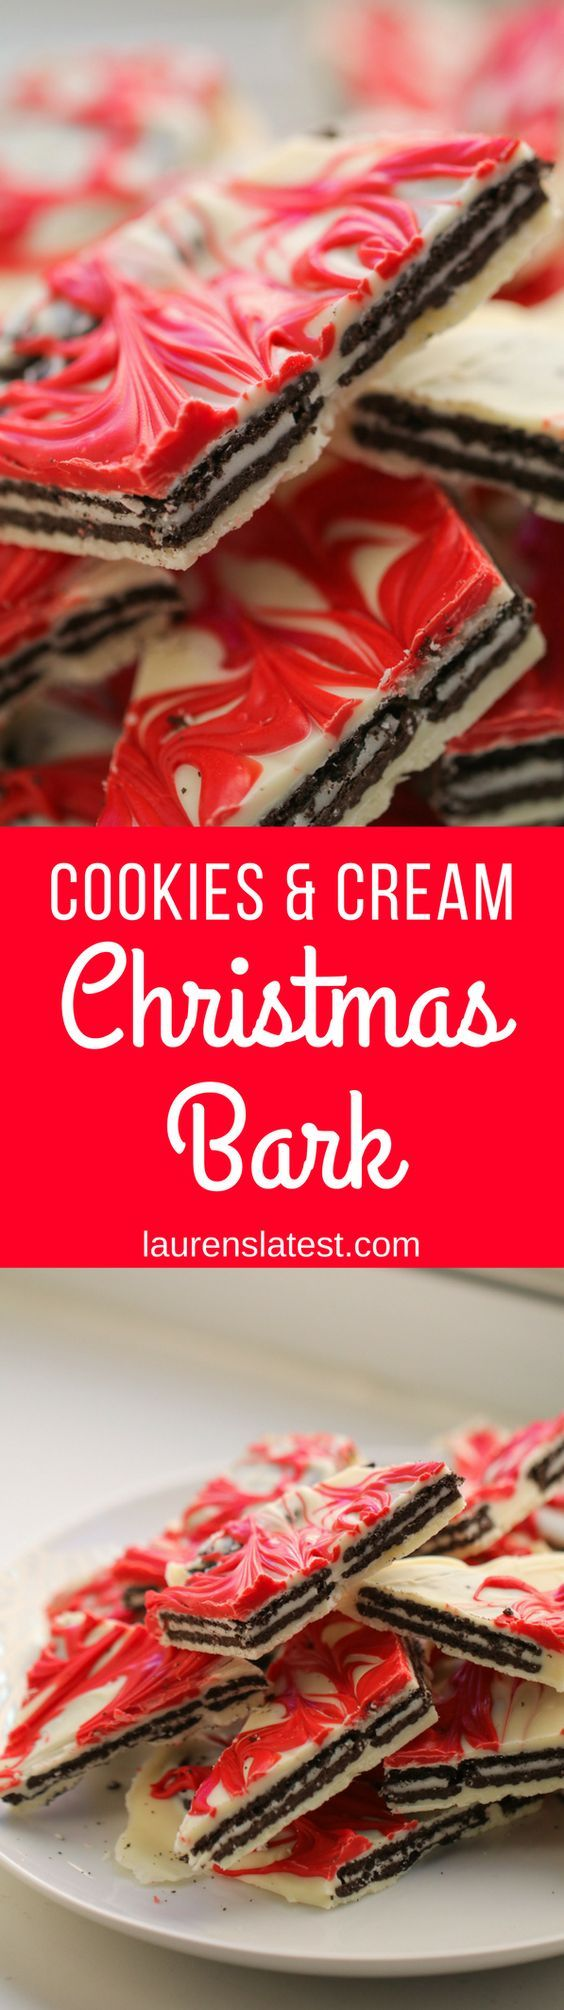 Cookies and Cream Christmas Bark A simple, three ingredient Christmas bark featuring OREOS! This is the ultimate, no-bake holiday treat.